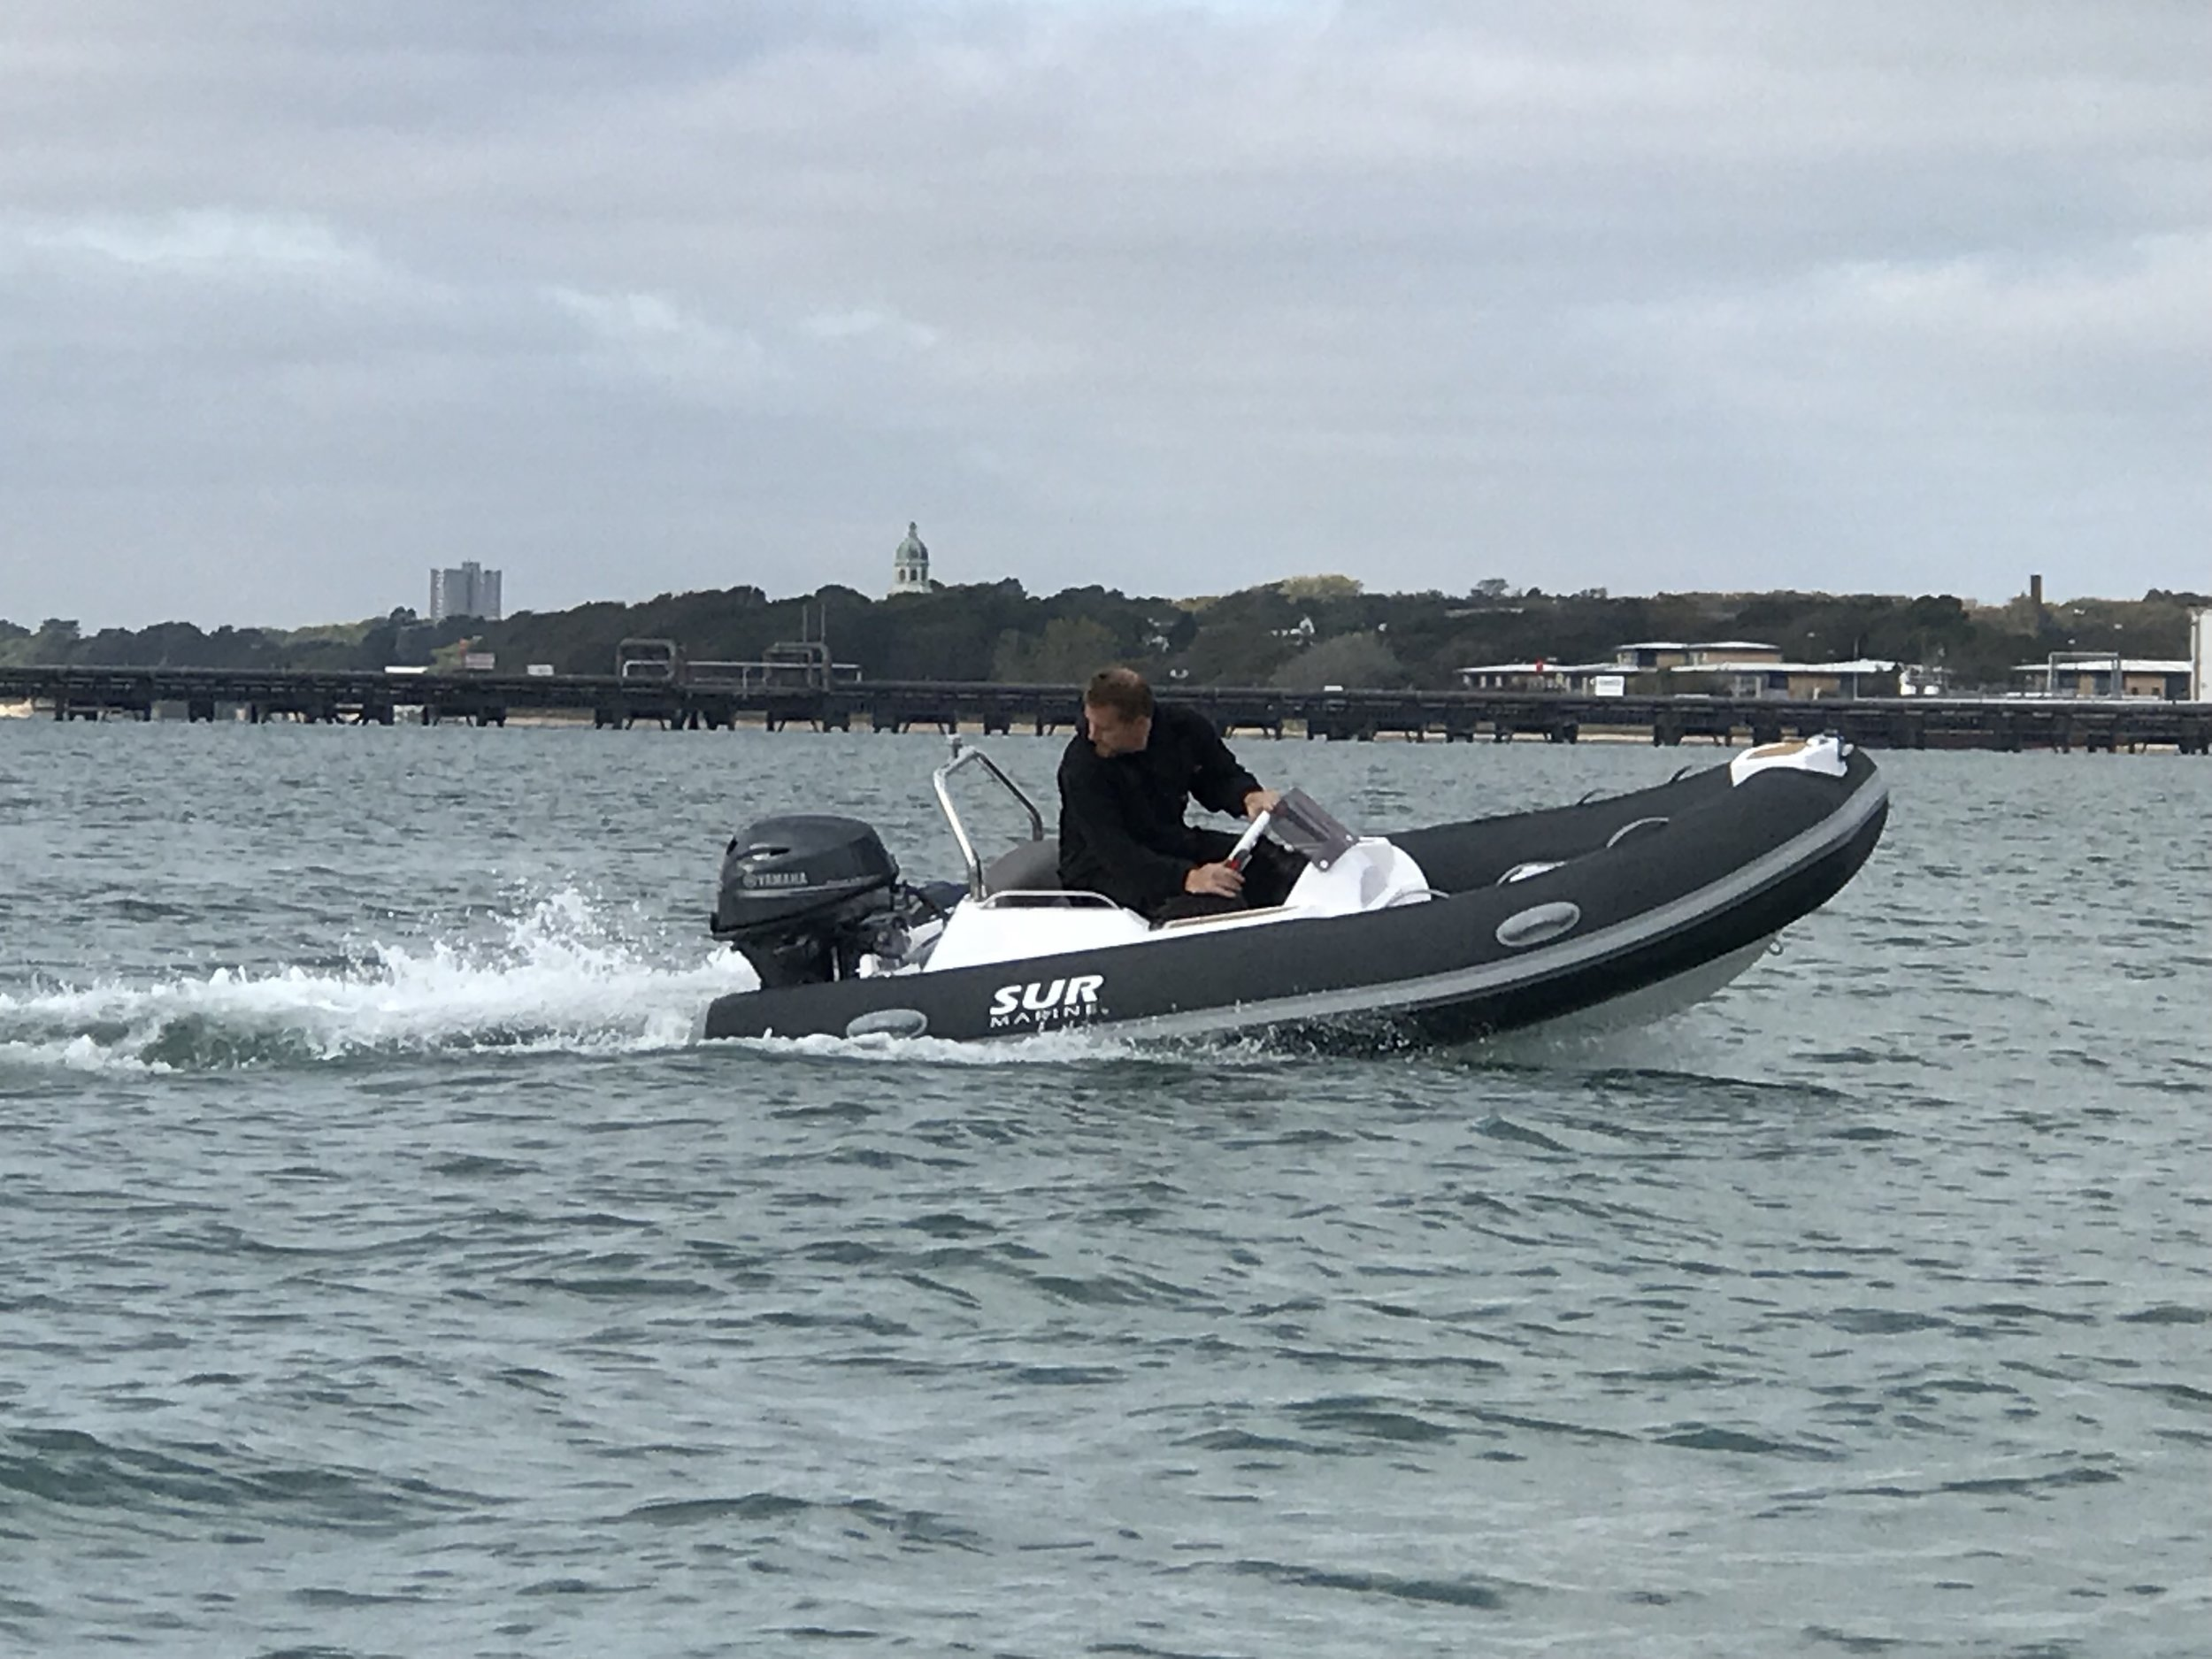 Pre dilivery Testing   New Sur Marine 370 Prestige with Yamaha 25hp At Hamble Point Marina